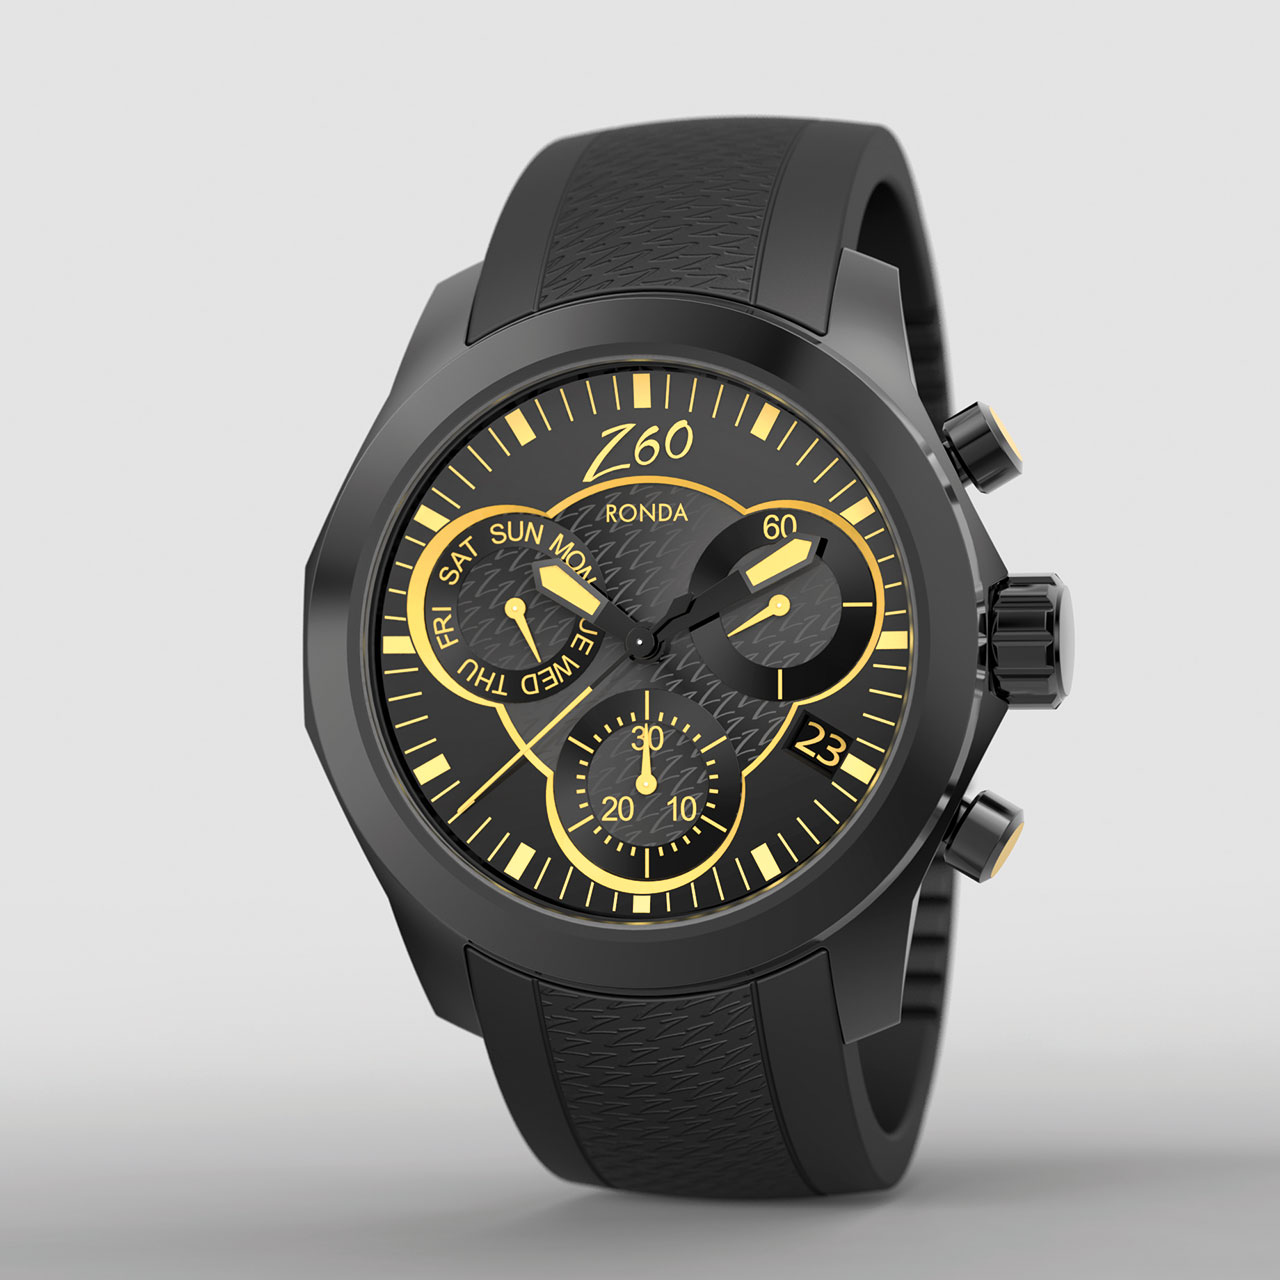 Ronda xtratech Z60 – new 13¼''' chronograph Watch